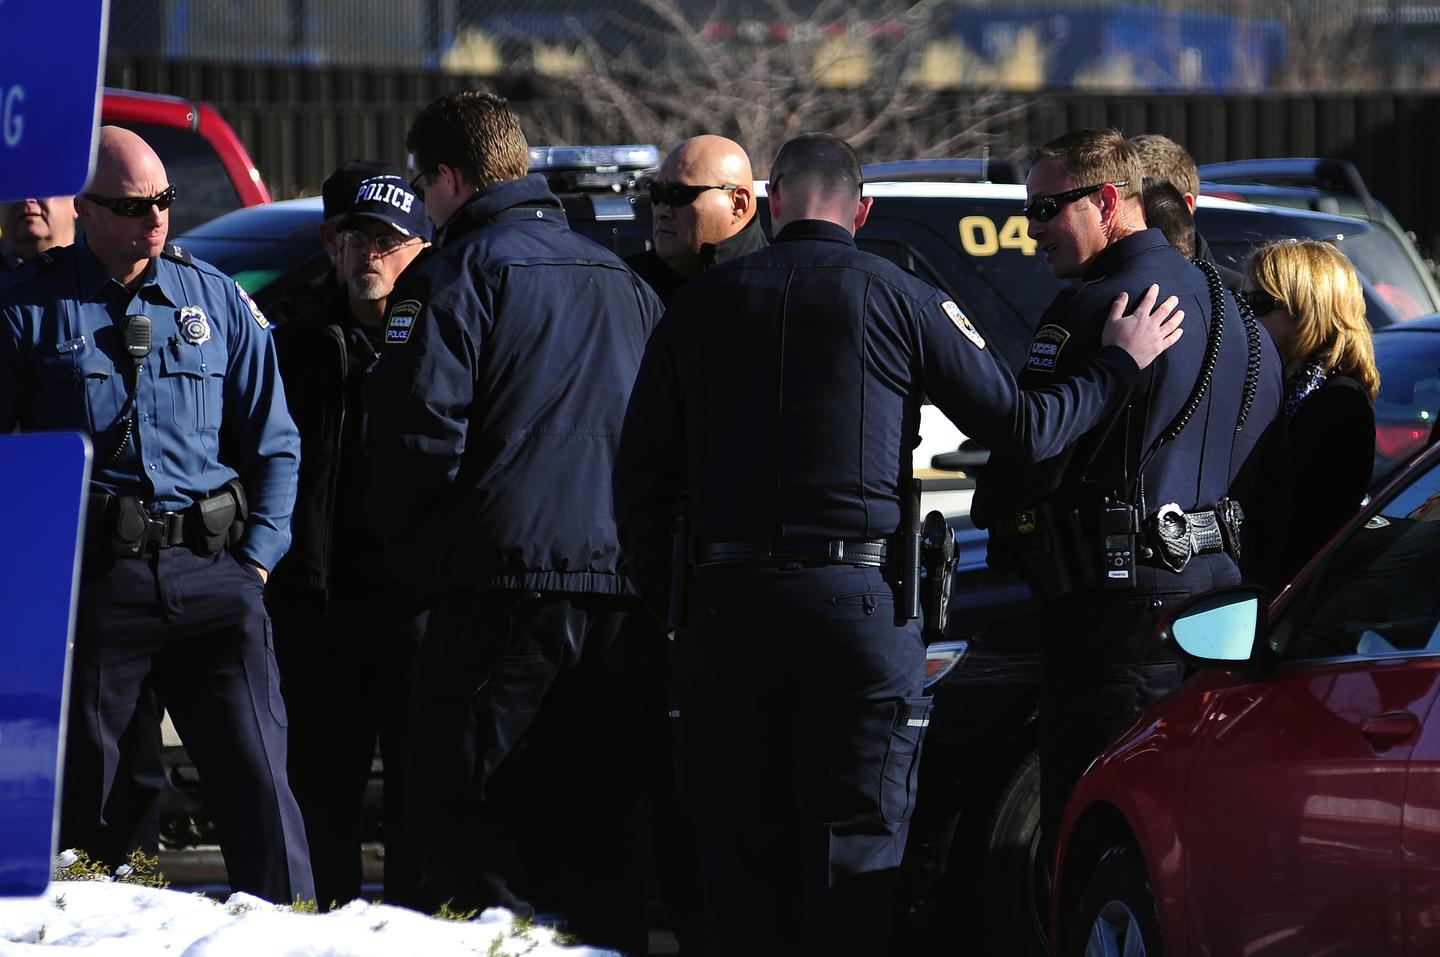 The Moral Blame for the Colorado Springs Shootings